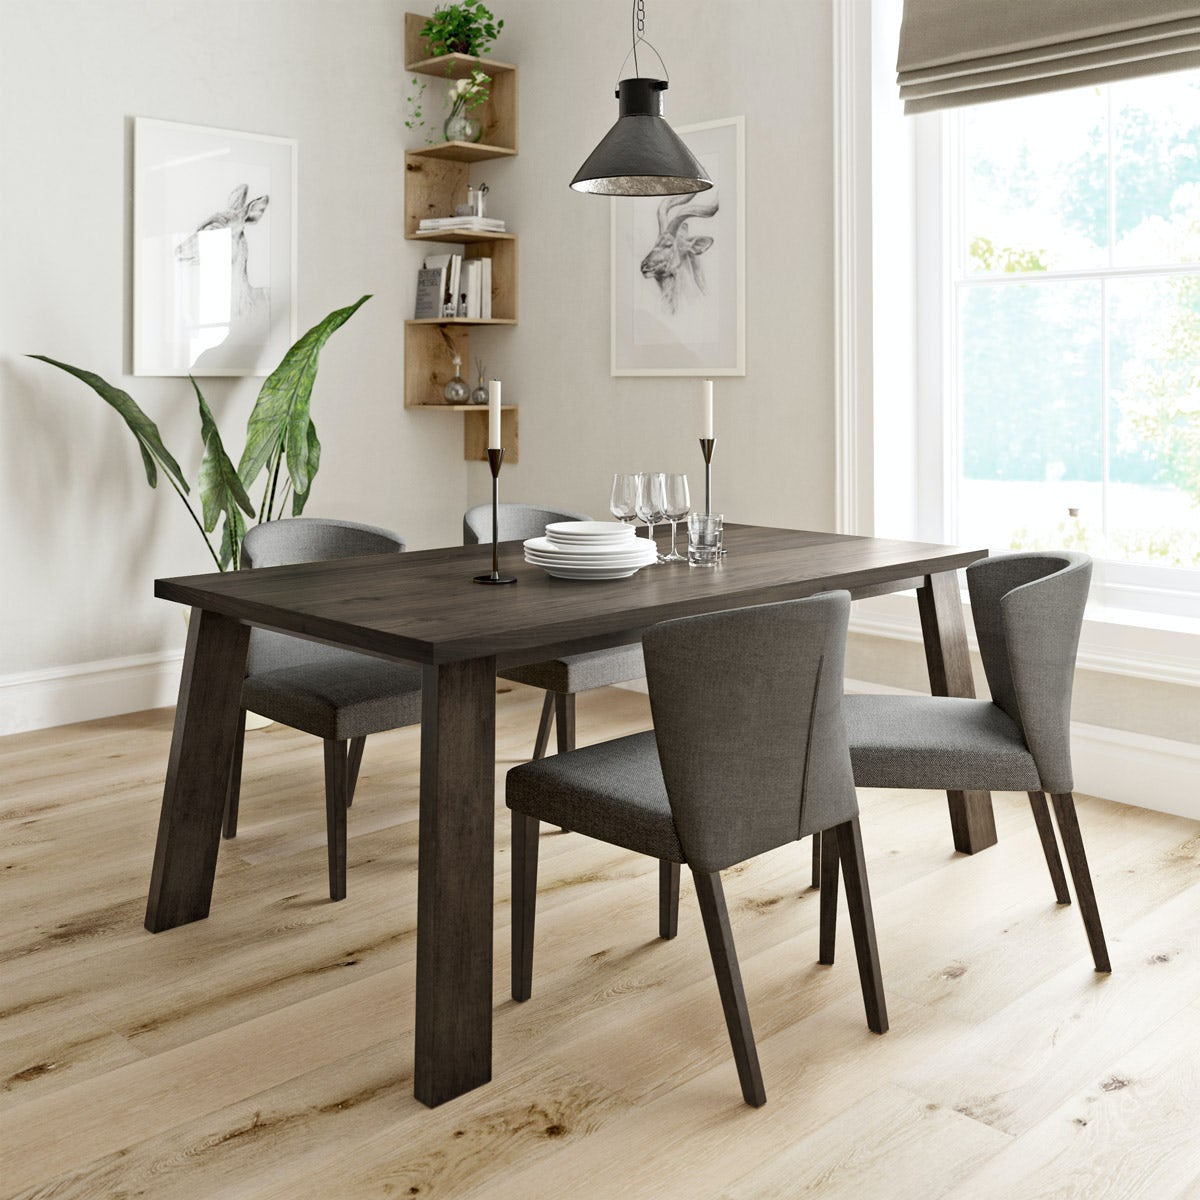 priced to clear lincoln walnut table with 4x hudson grey chairs